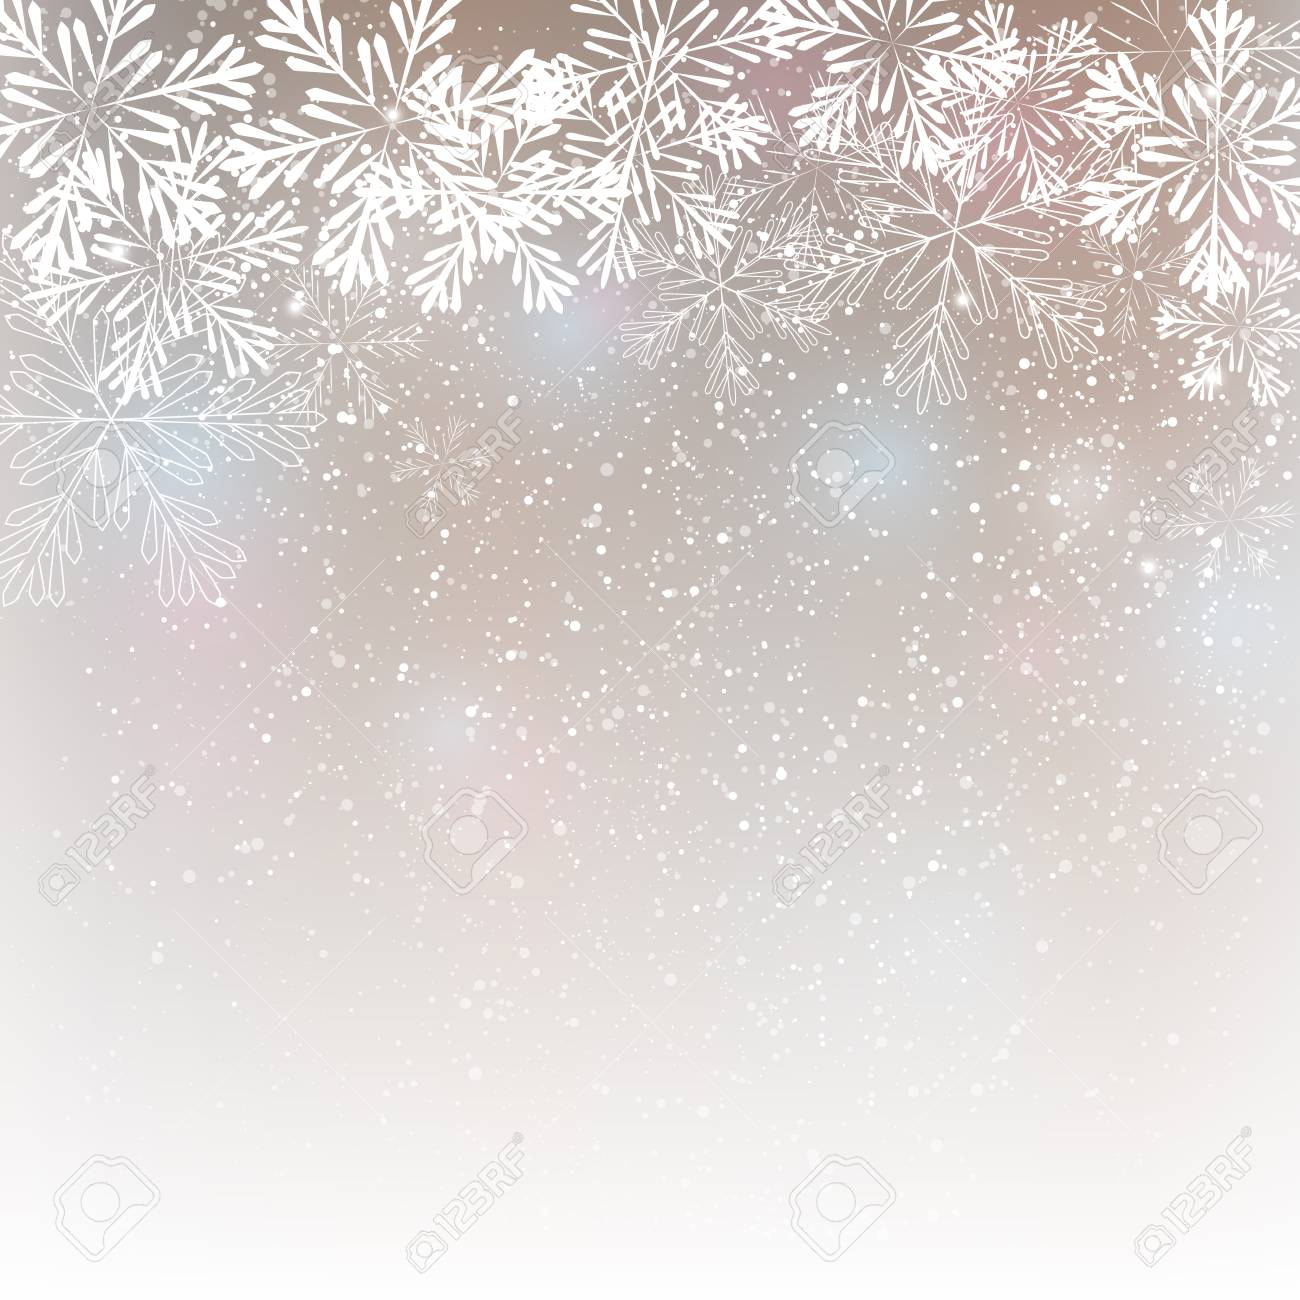 Snowflake background for Your design - 46278199